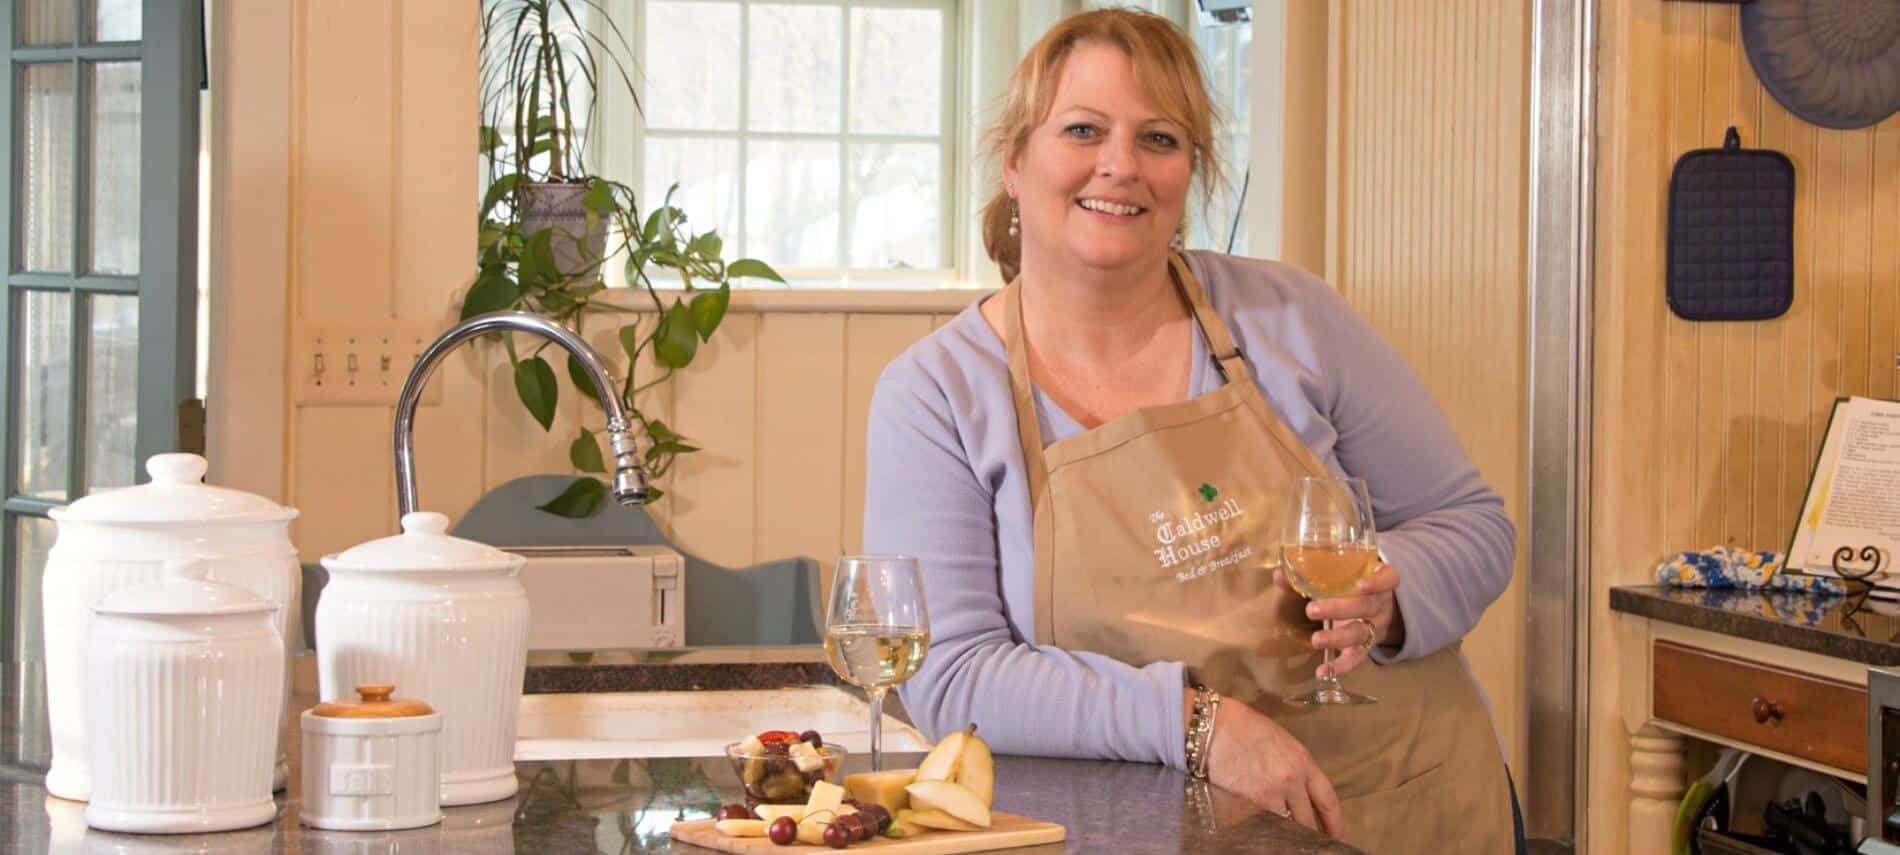 A proud and happy innkeeper smiles as she displays her charming kitchen, a selection of fine foods and wine